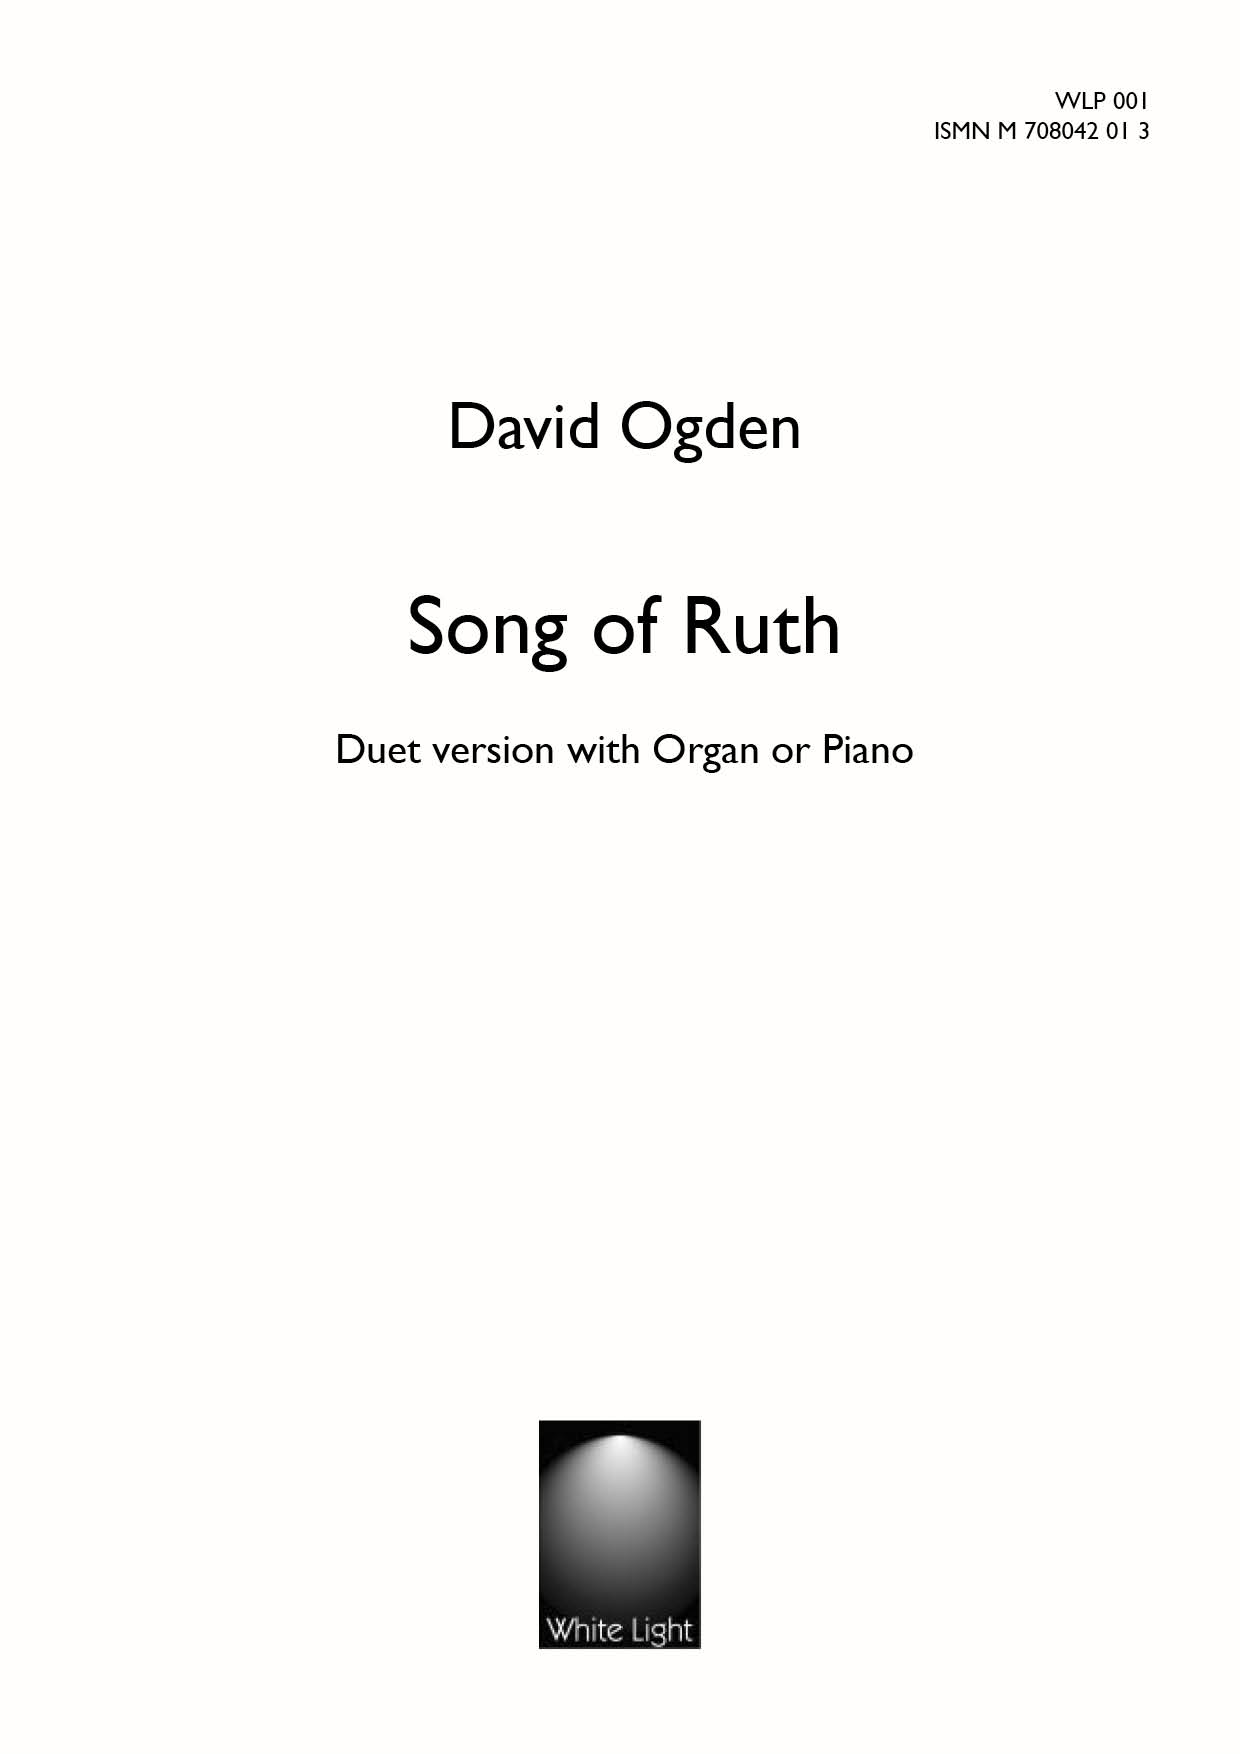 Song of Ruth - duet